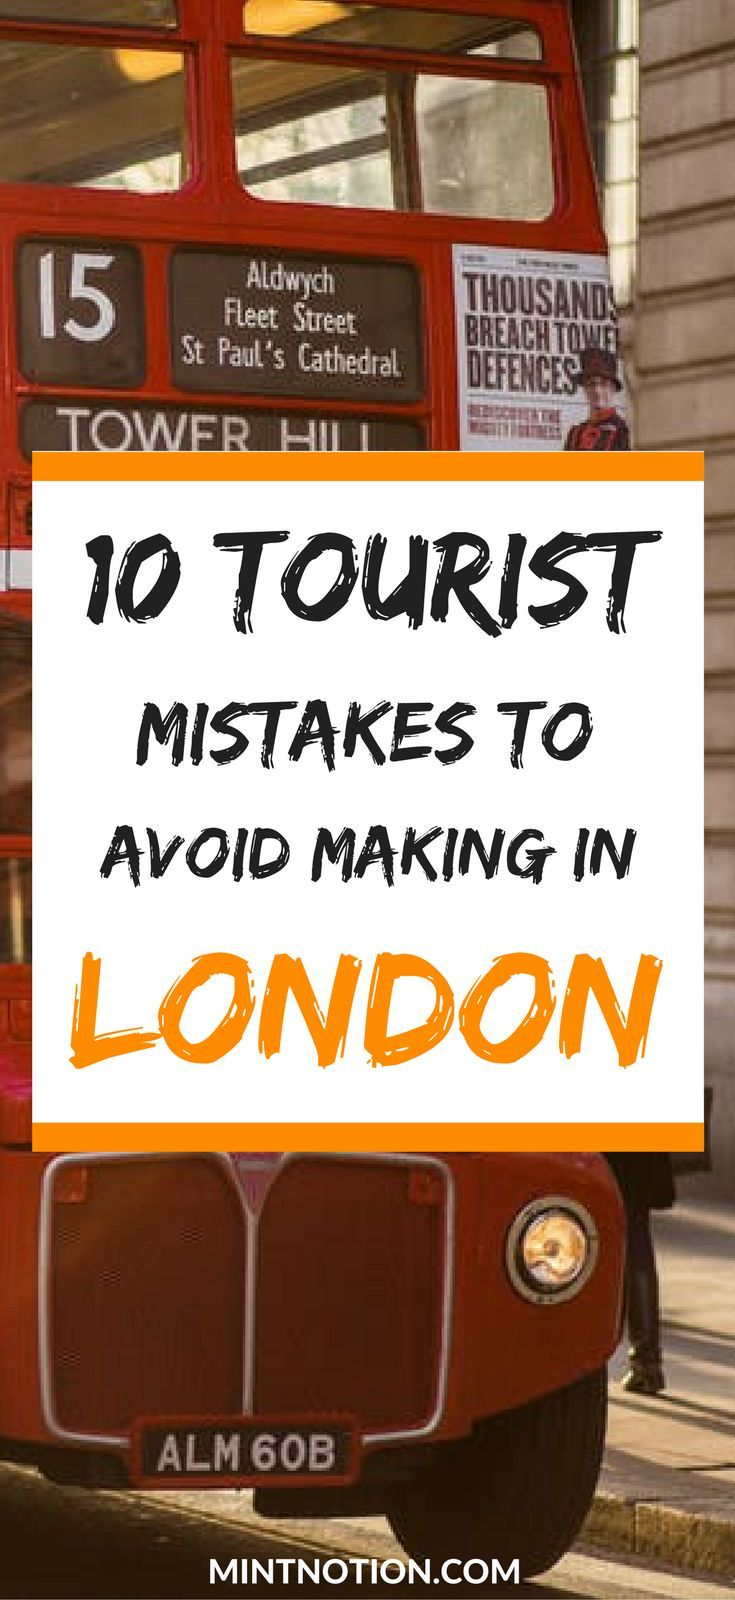 Planning London travel? Check out the best ways see all the top attractions in London on a budget for first-time visitors. There is no shortage of free things to do in London.